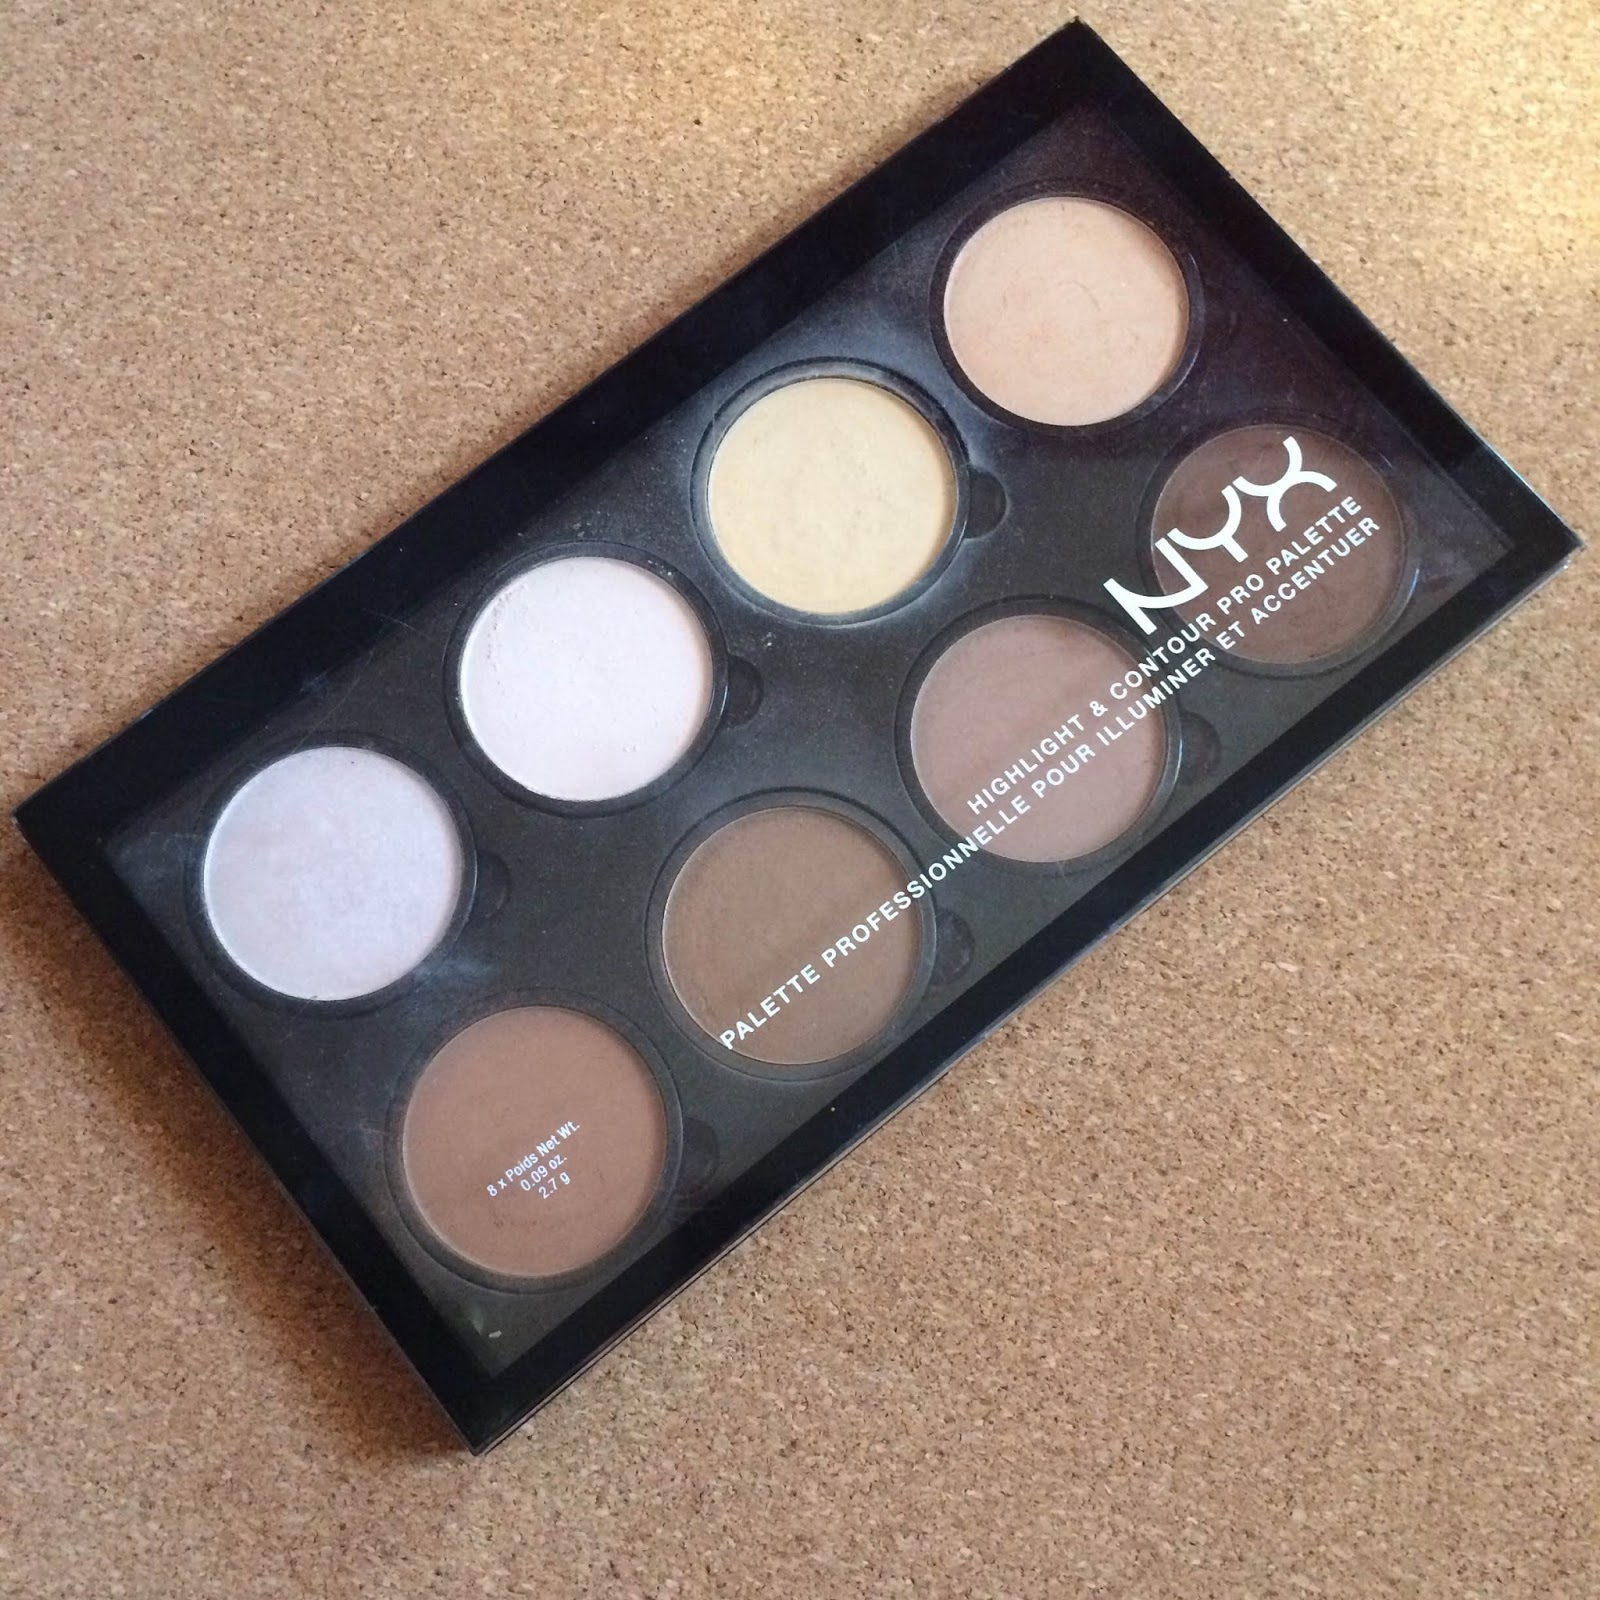 review swatches dupe nyx highlight and contour pro. Black Bedroom Furniture Sets. Home Design Ideas